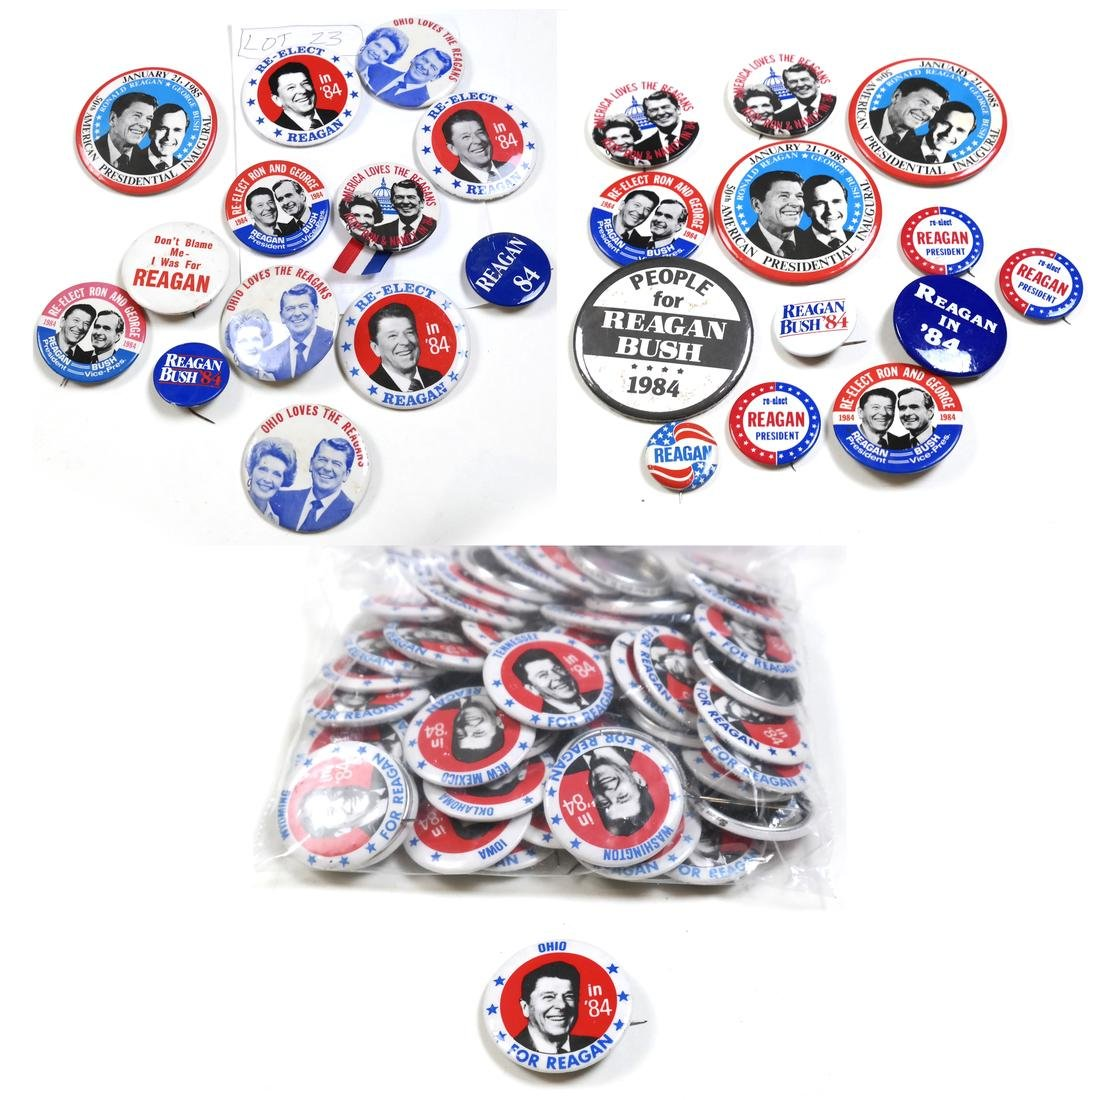 LARGE GROUP OF R. REAGAN 1984 BUTTONS